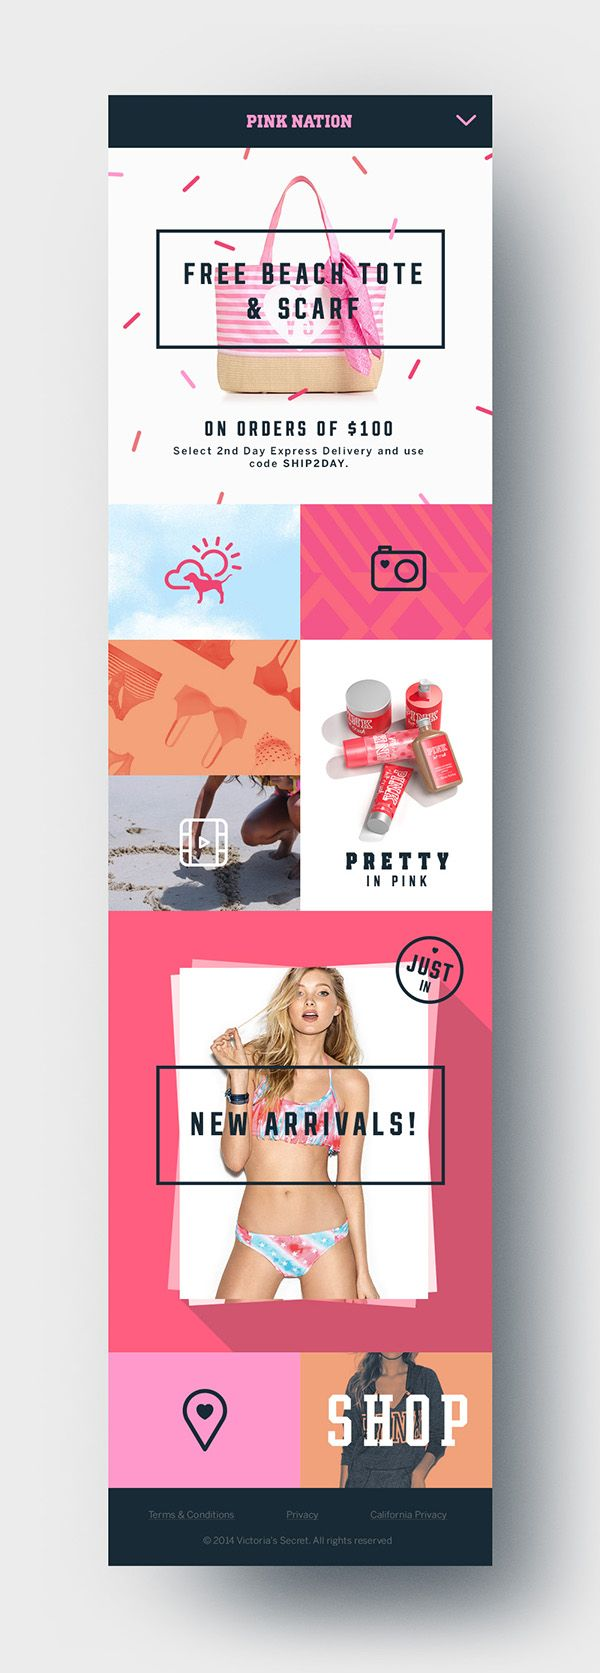 Pink Nation App on Behance